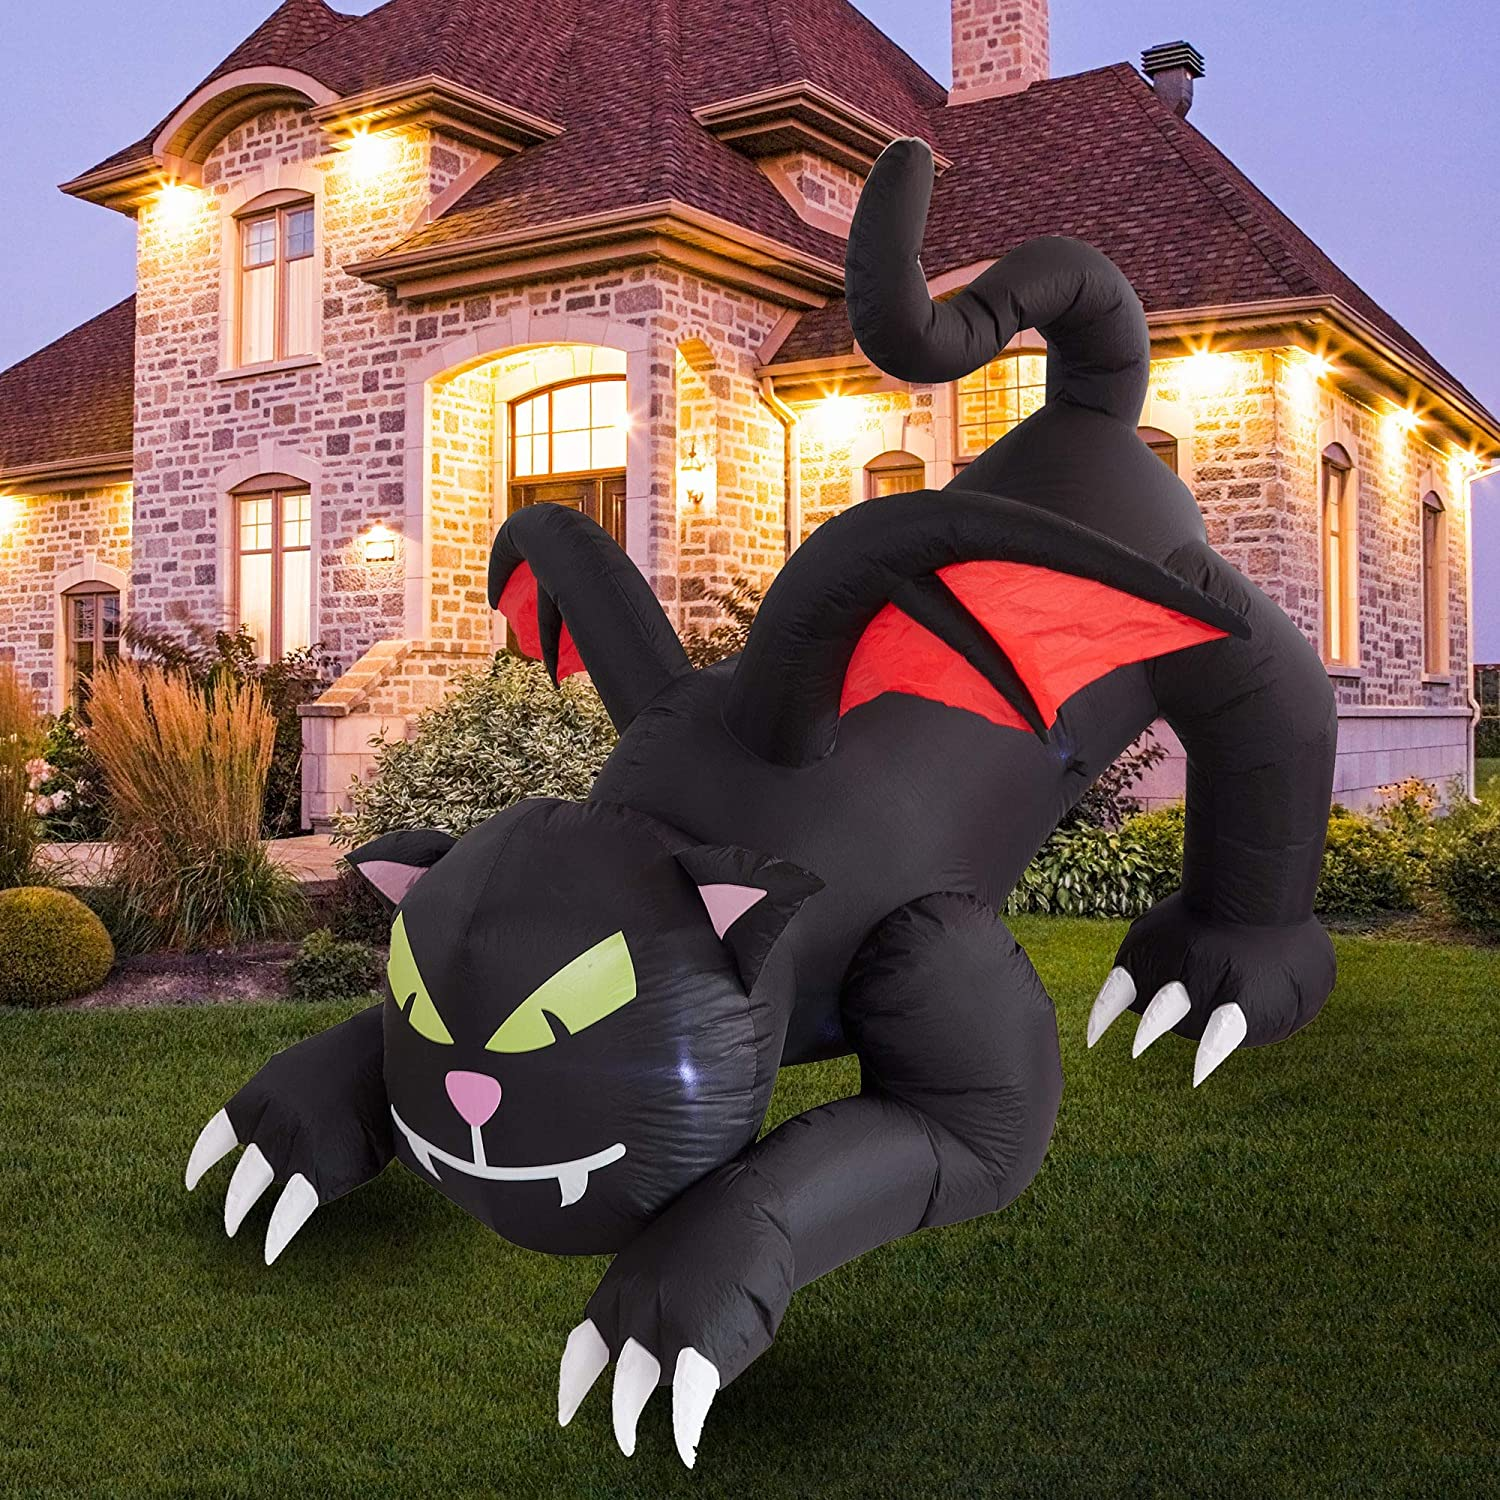 Giant Lawn Decorations for Home Yard Lawn Garden Party Decor Animated Halloween Blow Up Yard Prop Twinkle Star 6ft Halloween Decorations Inflatable Outdoor Lighted Black Cat with Wings